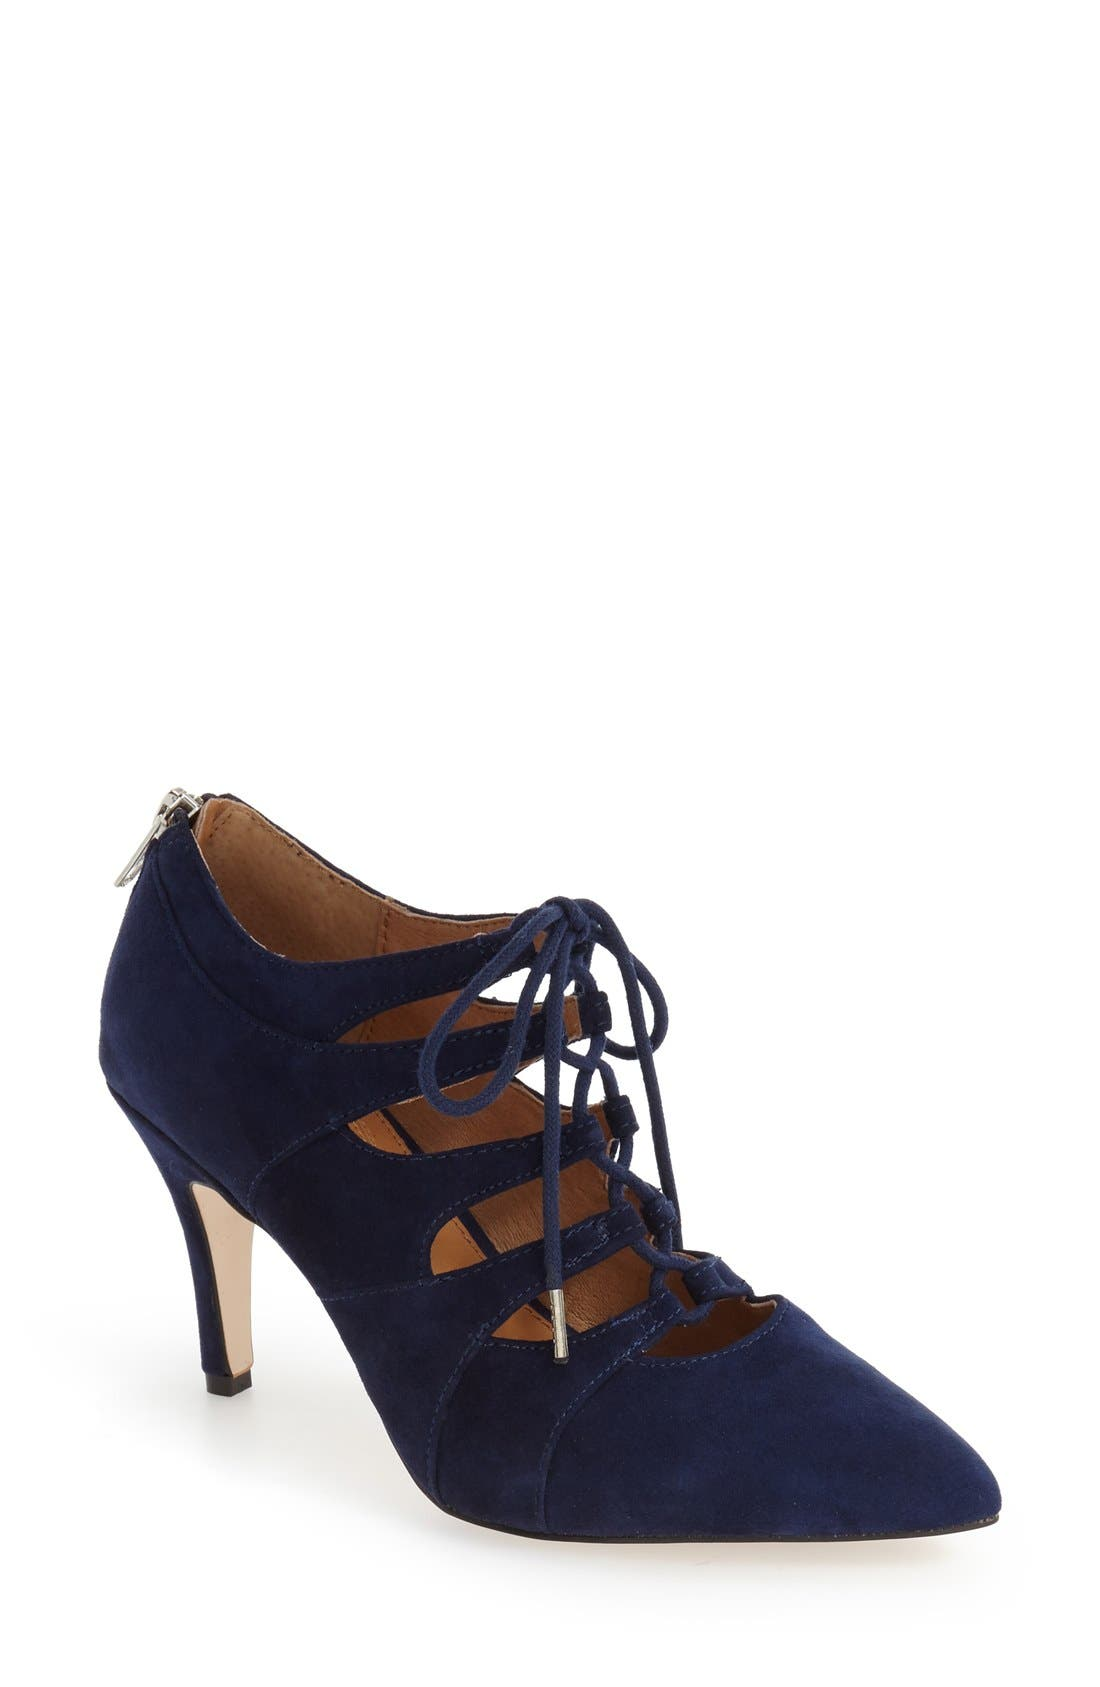 Corso Como 'Cocktail' Lace-Up Pump (Women)